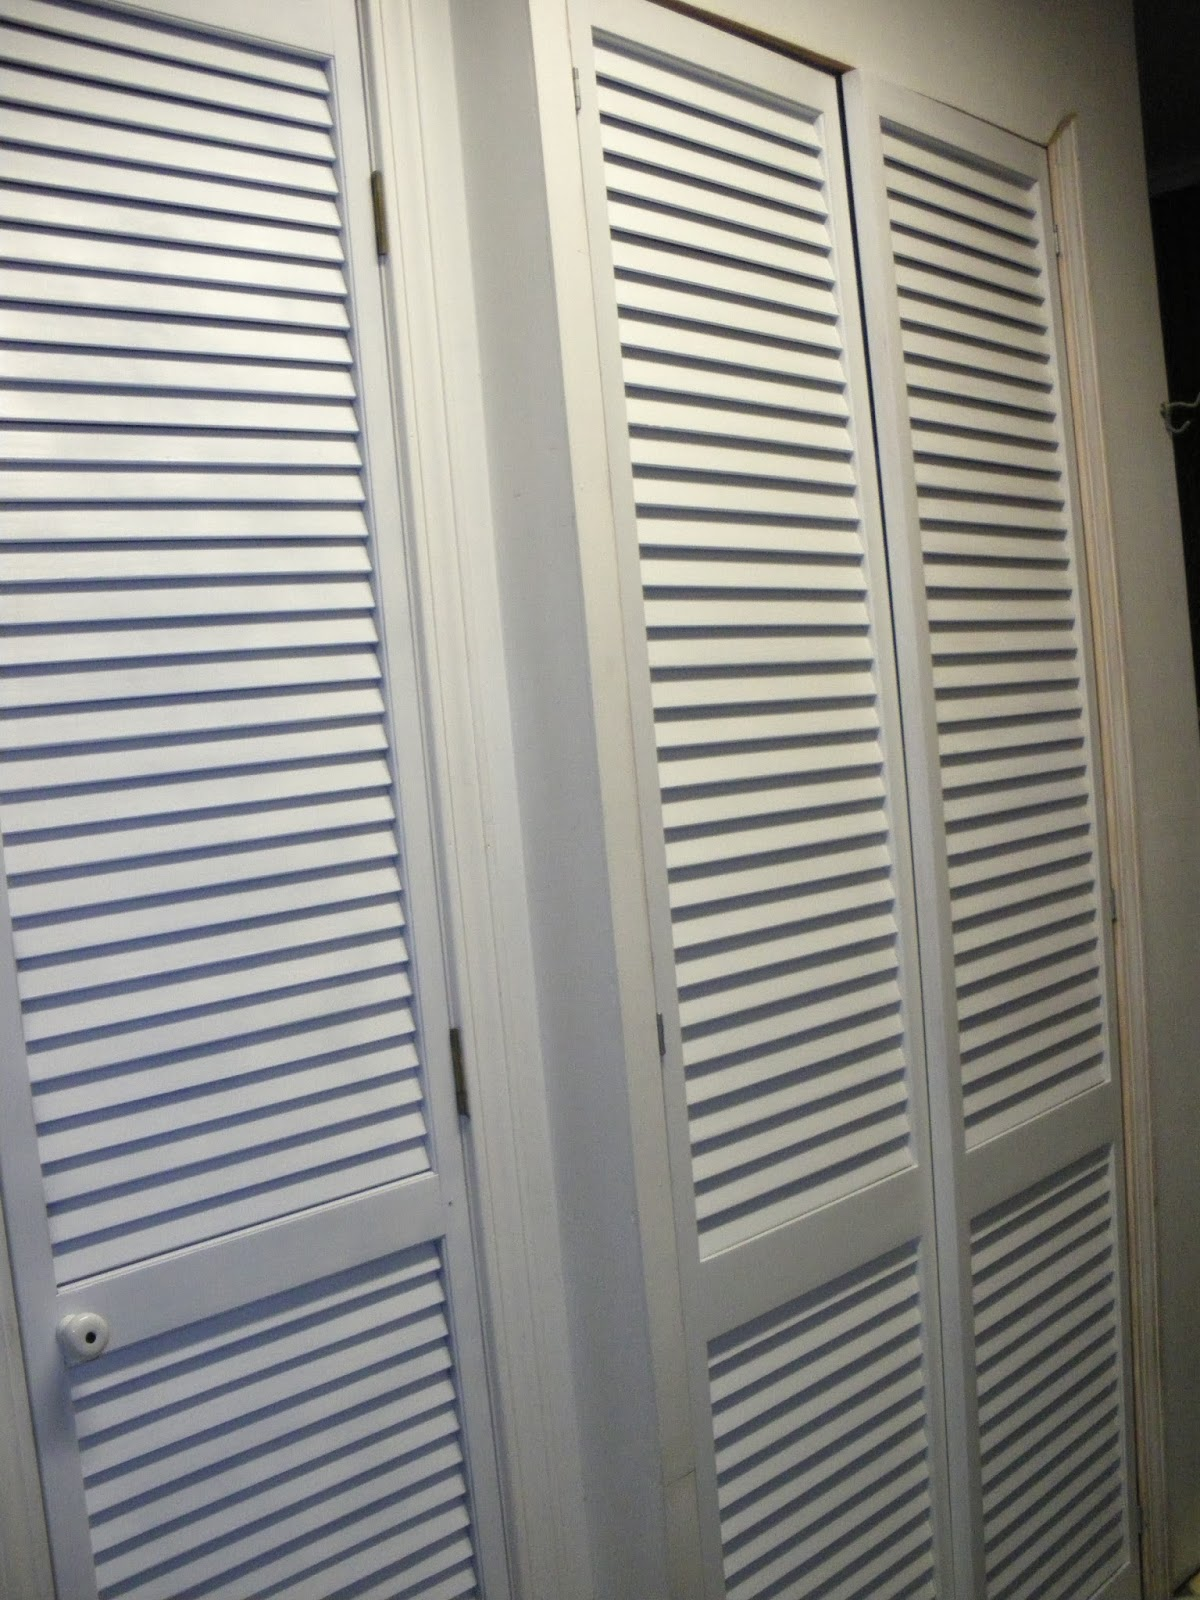 1600 #51586D Room Looked Like With The Unpainted Doors And What It Looks  Like Now Louvered Door Panels 3315120033151600